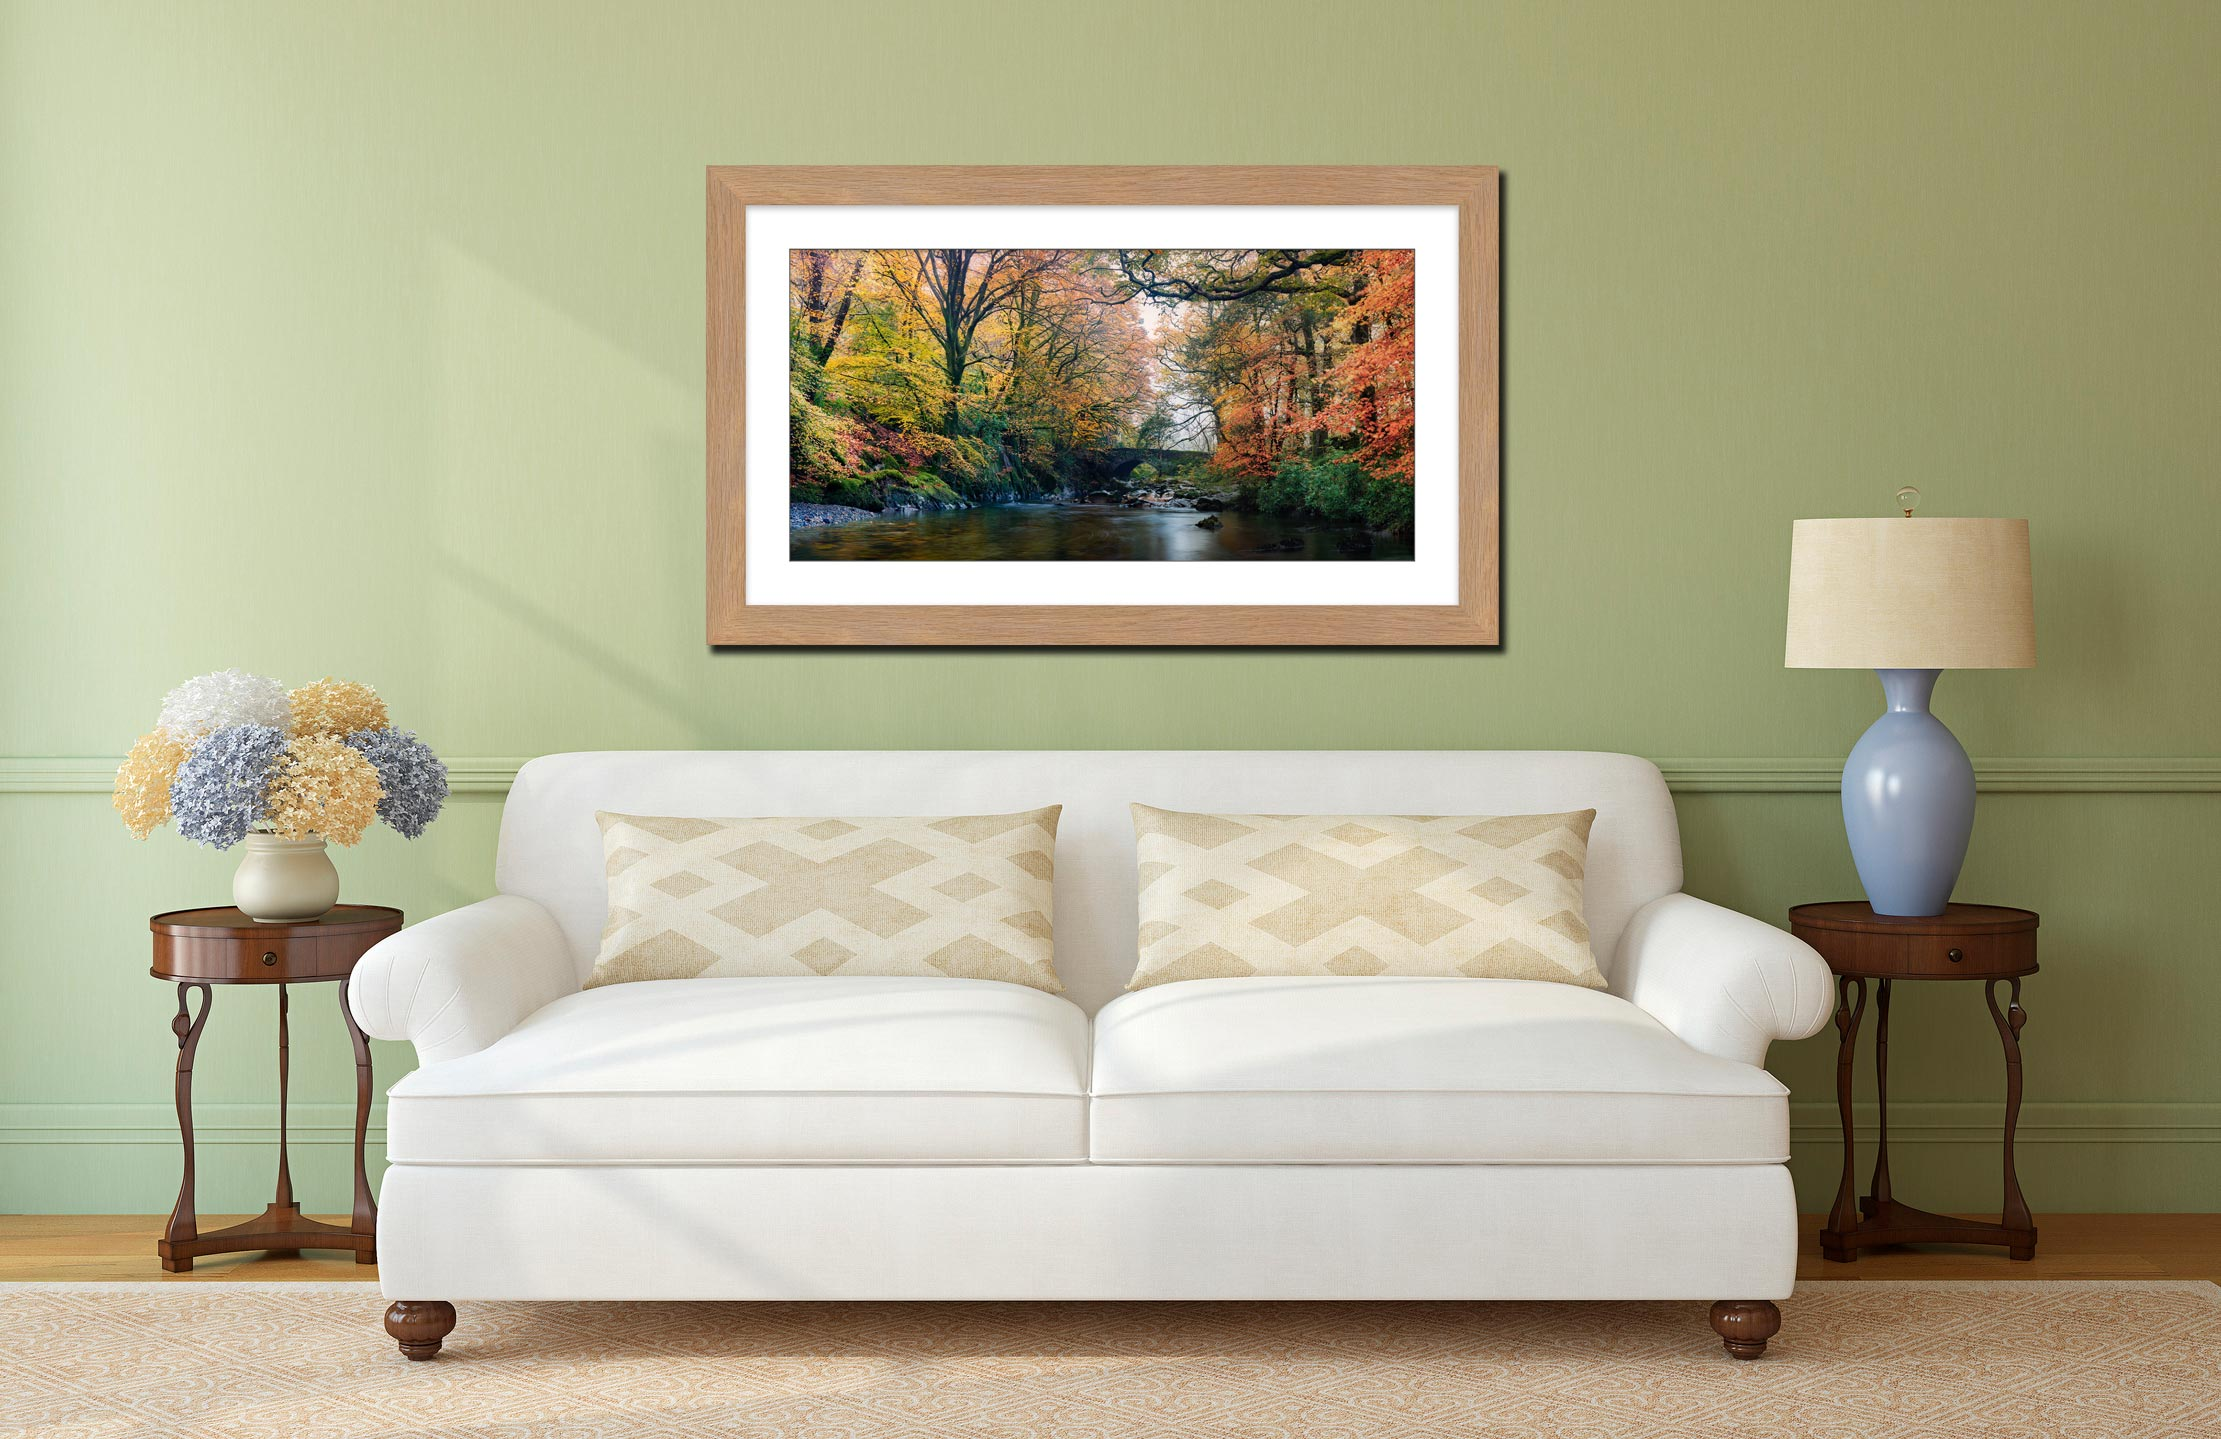 River Esk Bridge in Autumn - Framed Print with Mount on Wall